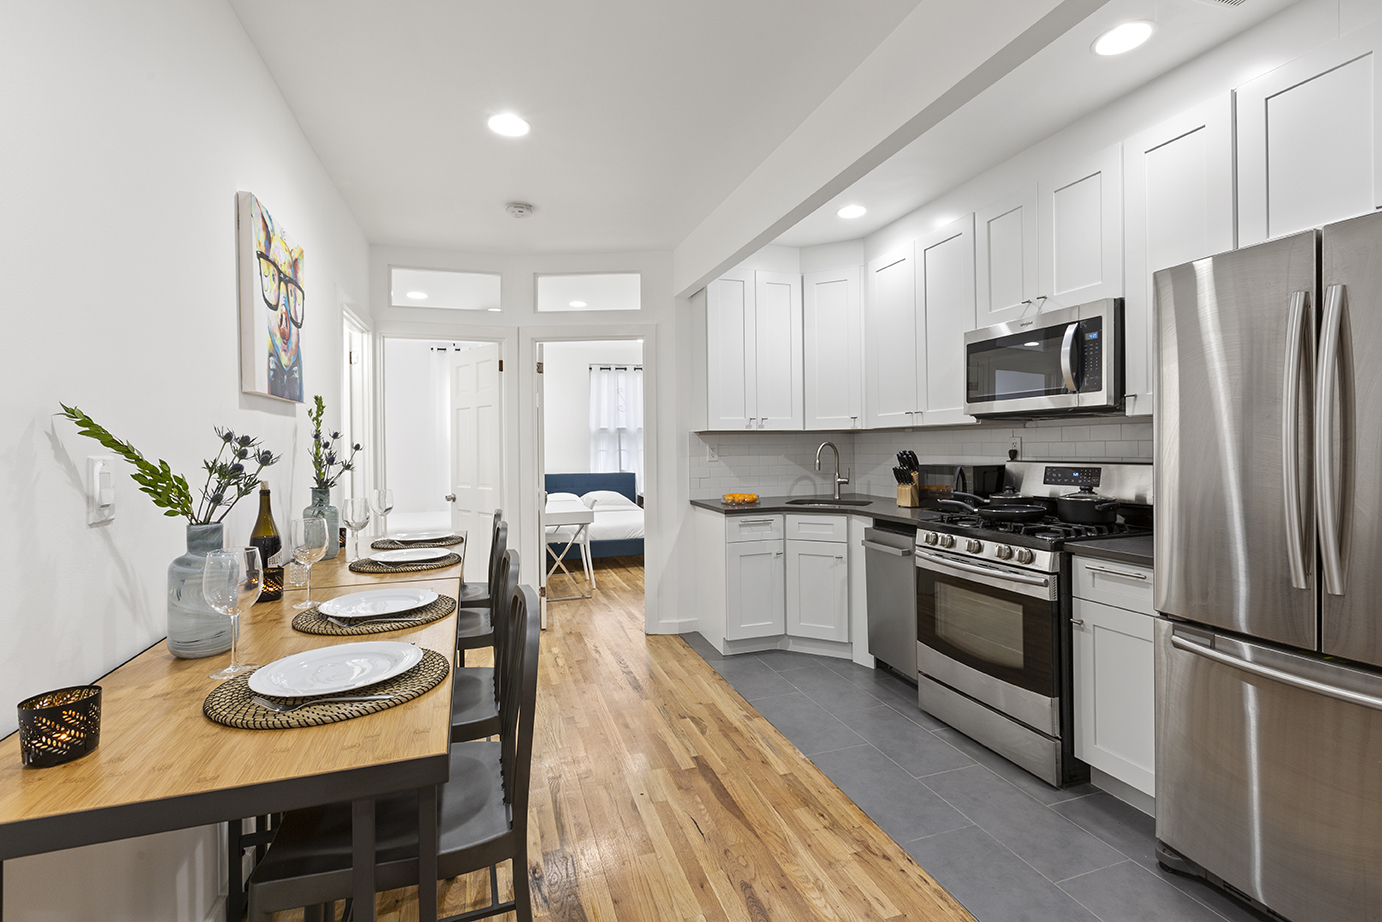 Live at Private Furnished Bedroom In Shared Apartment. Comfortable 4 Bed 2 Bath, Flexible Lease